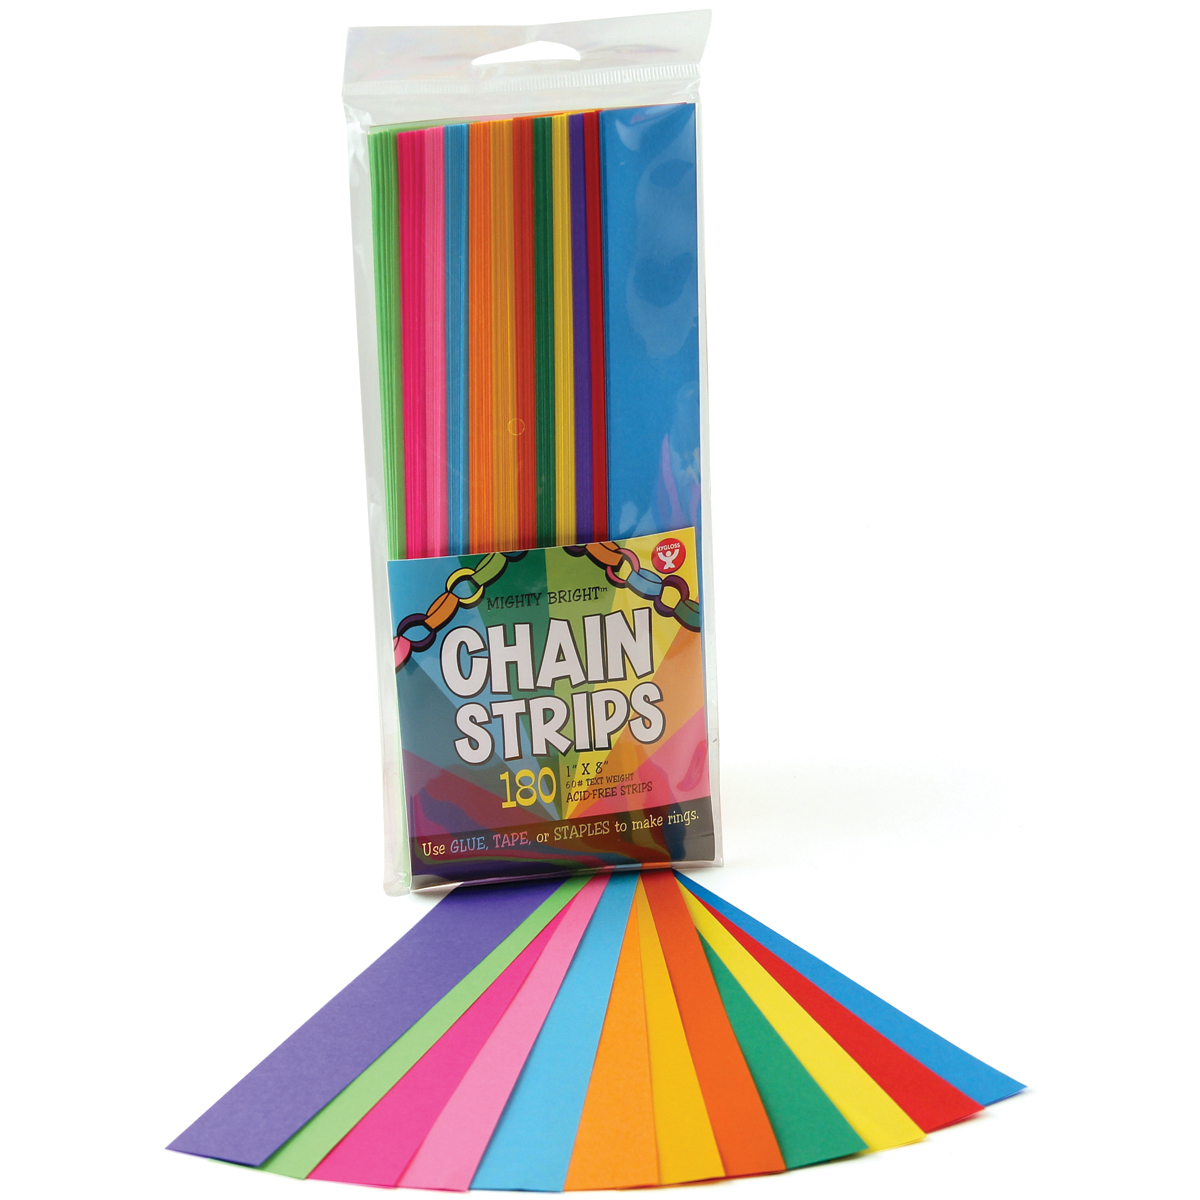 "Mighty Bright Chain Strips, Assorted Colors, 1"" x 8"", 180pk"